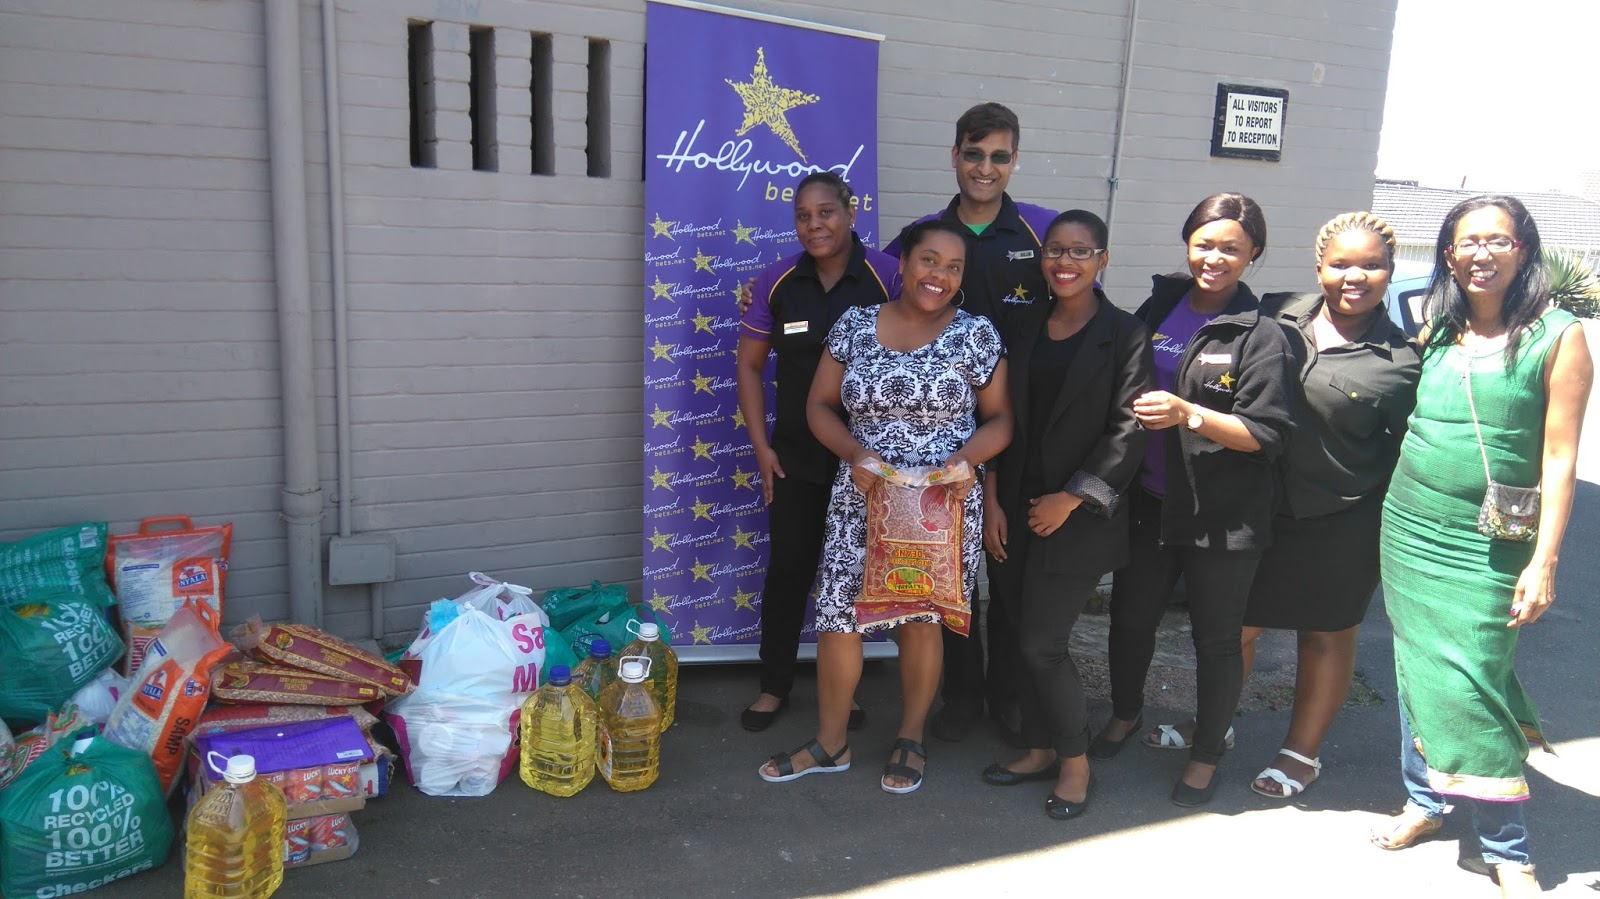 St Thomas Home for Children's staff members are thankful for a donation made by Hollywoodbets Overport